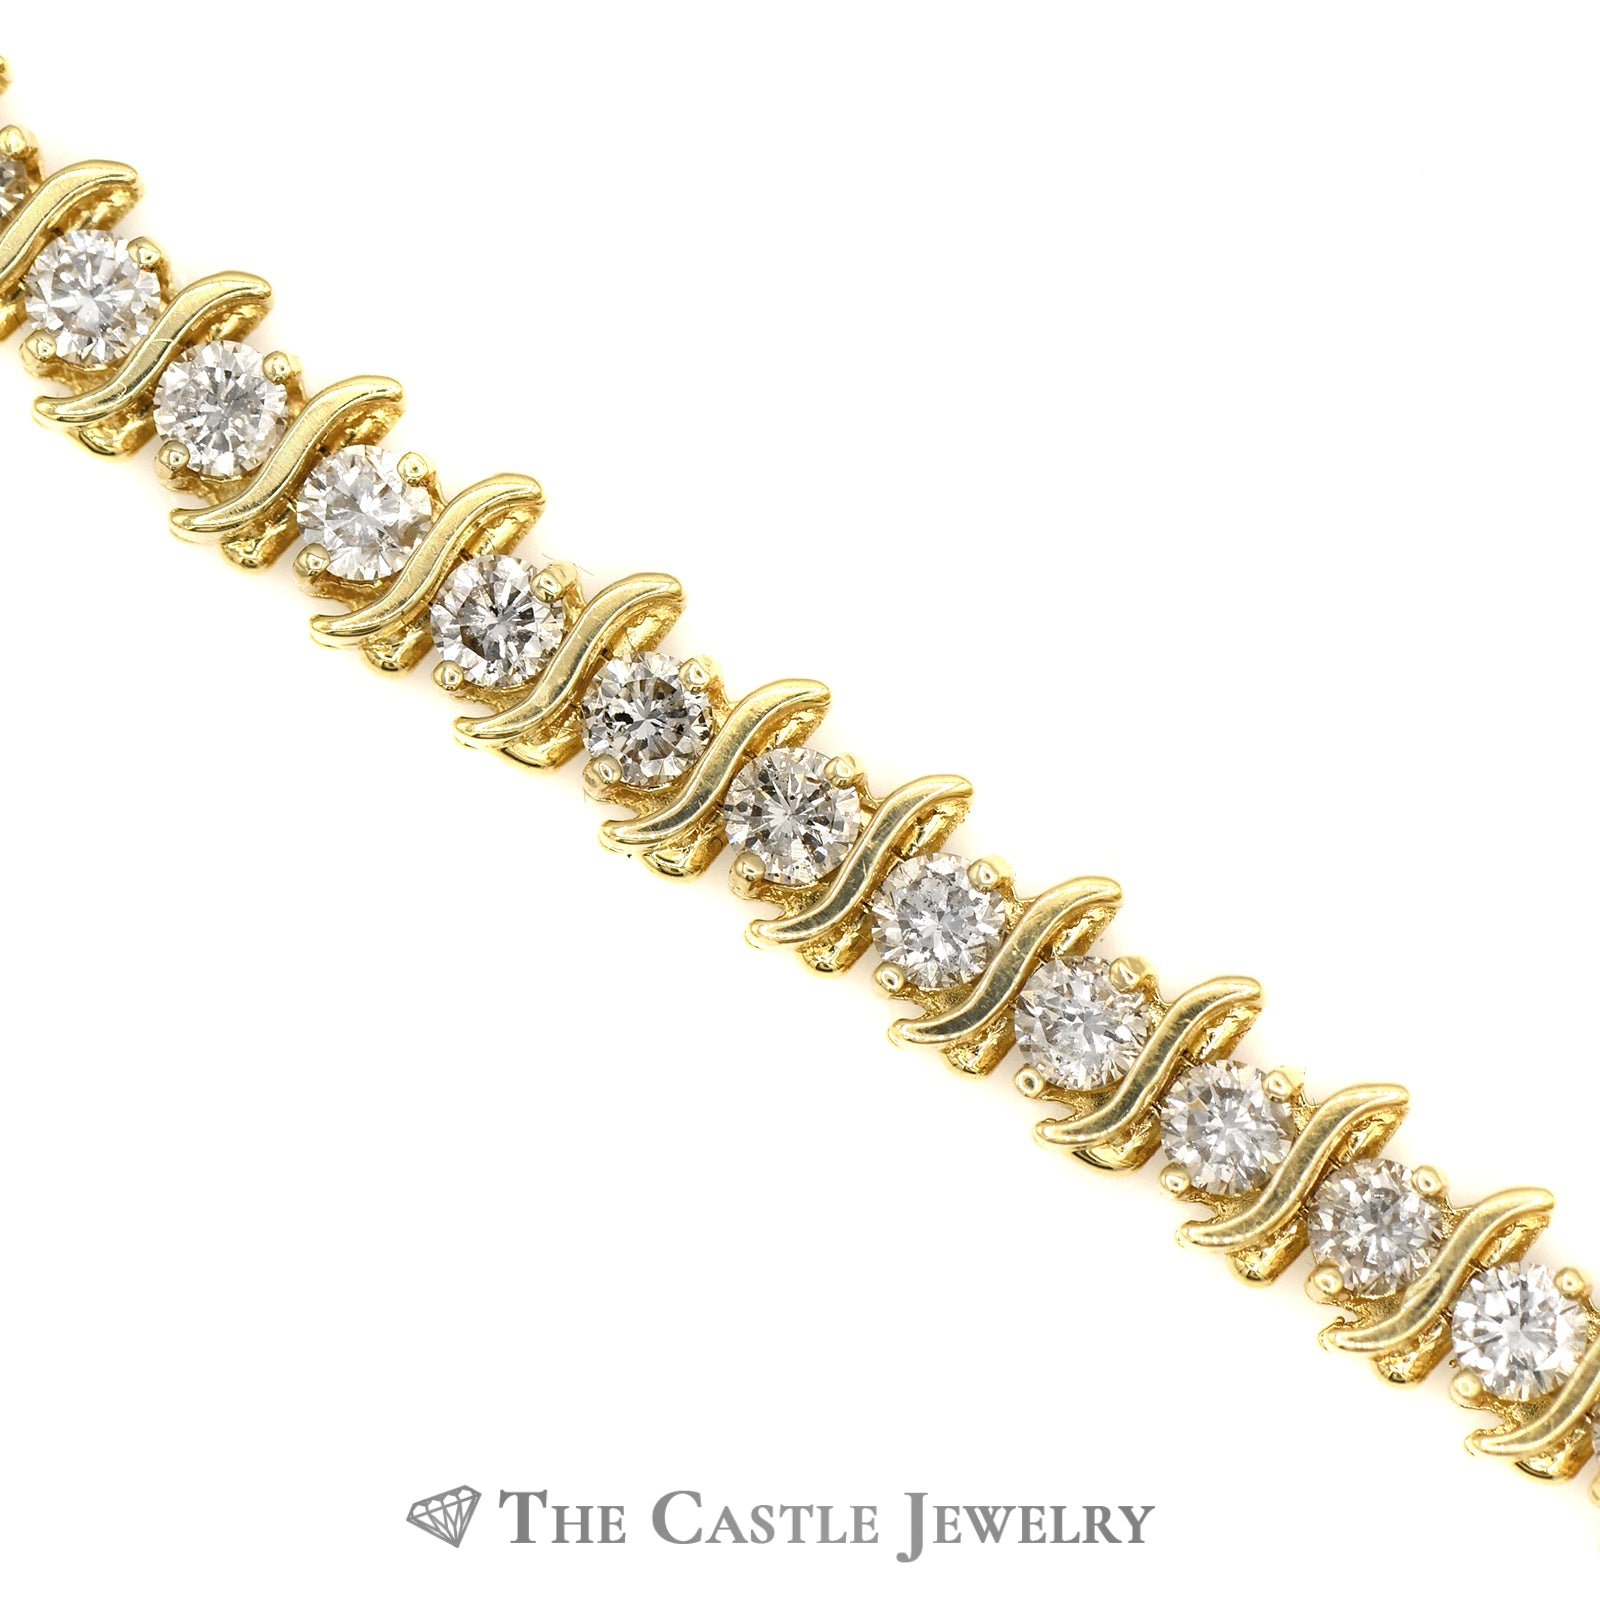 6 3/4 Inch 7.75cttw Diamond S Link Tennis Bracelet in 14k Yellow Gold